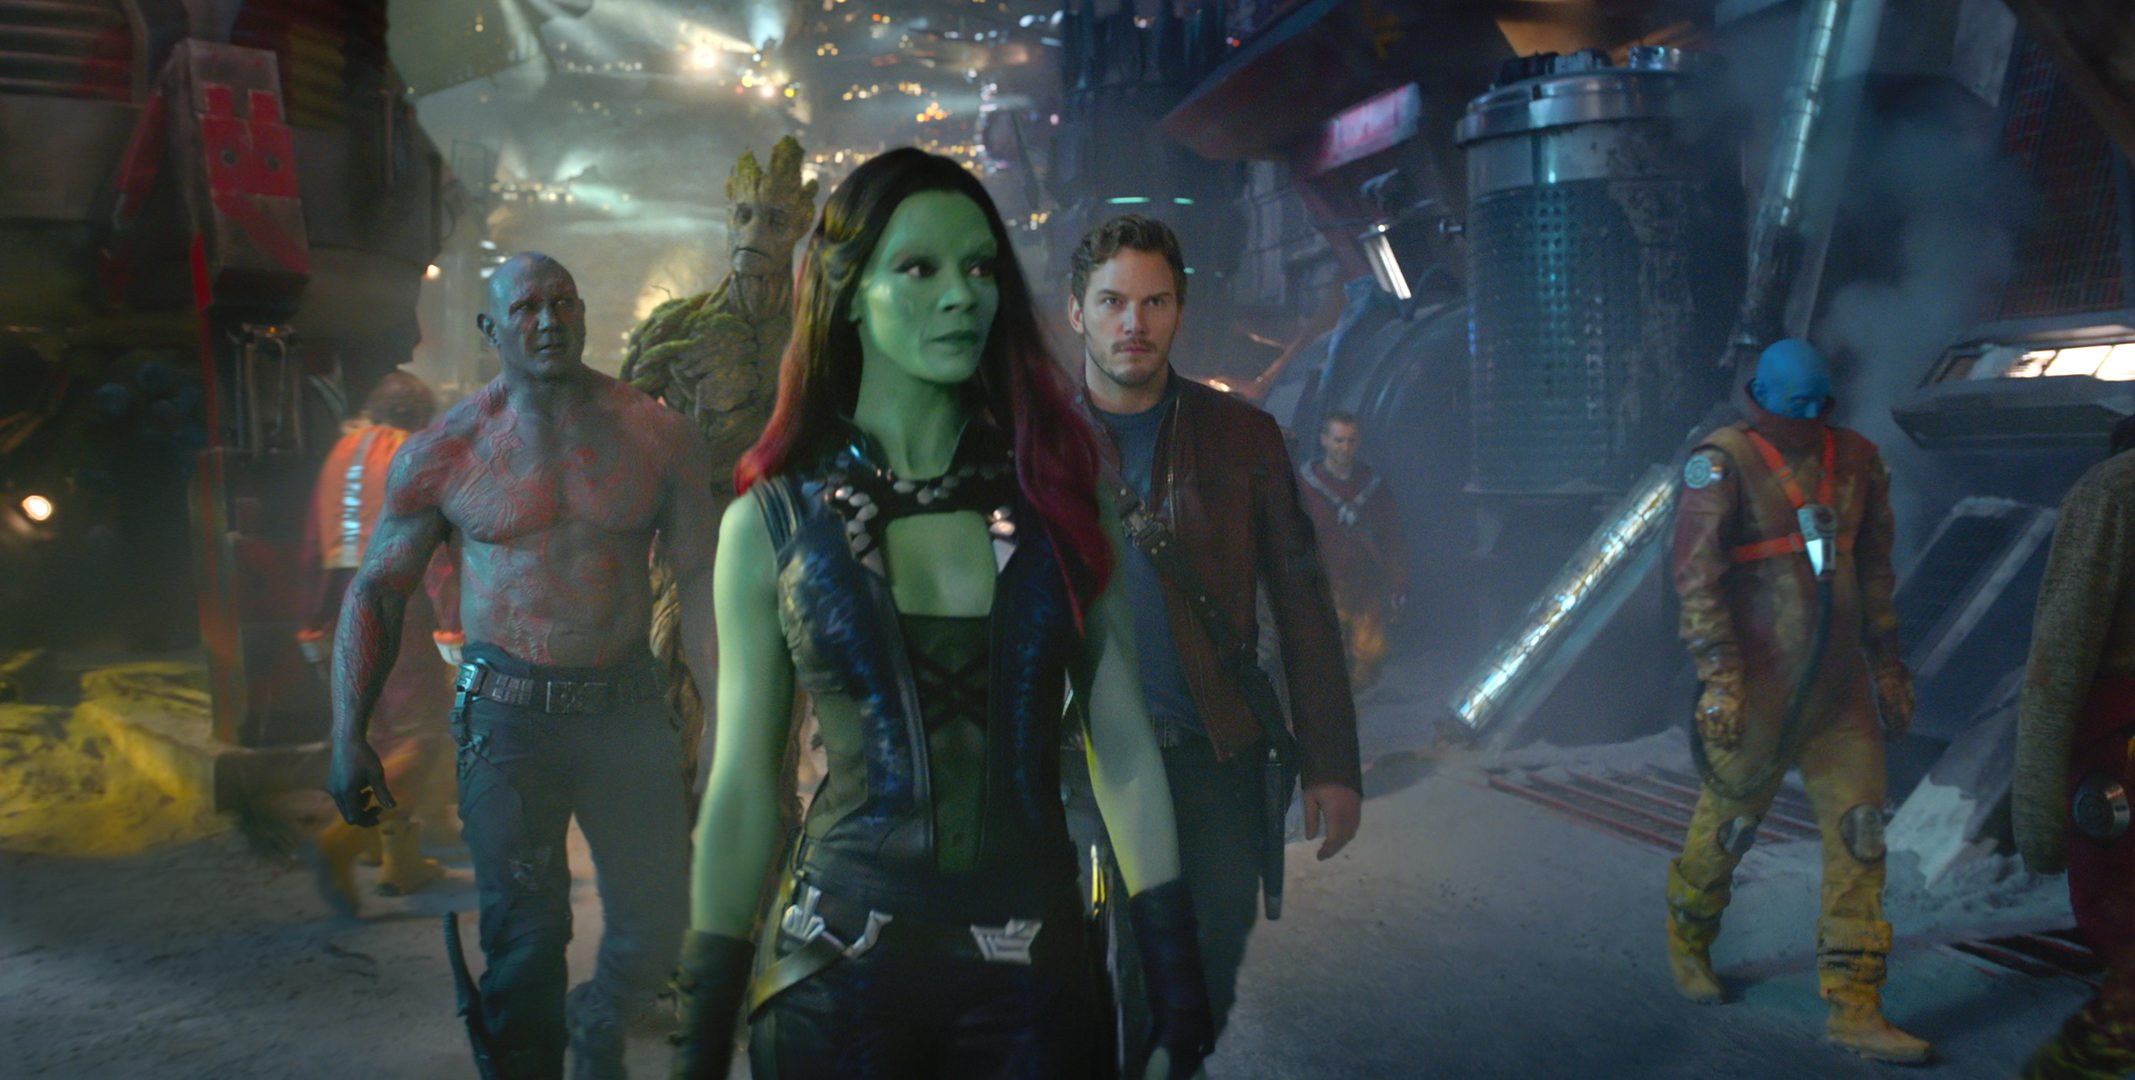 Marvel's Guardians Of The Galaxy L to R: Drax (Dave Bautista), Groot (Voiced by Vin Diesel), Gamora (Zoe Saldana), and Star-Lord/Peter Quill (Chris Pratt) Ph: Film Frame ©Marvel 2014